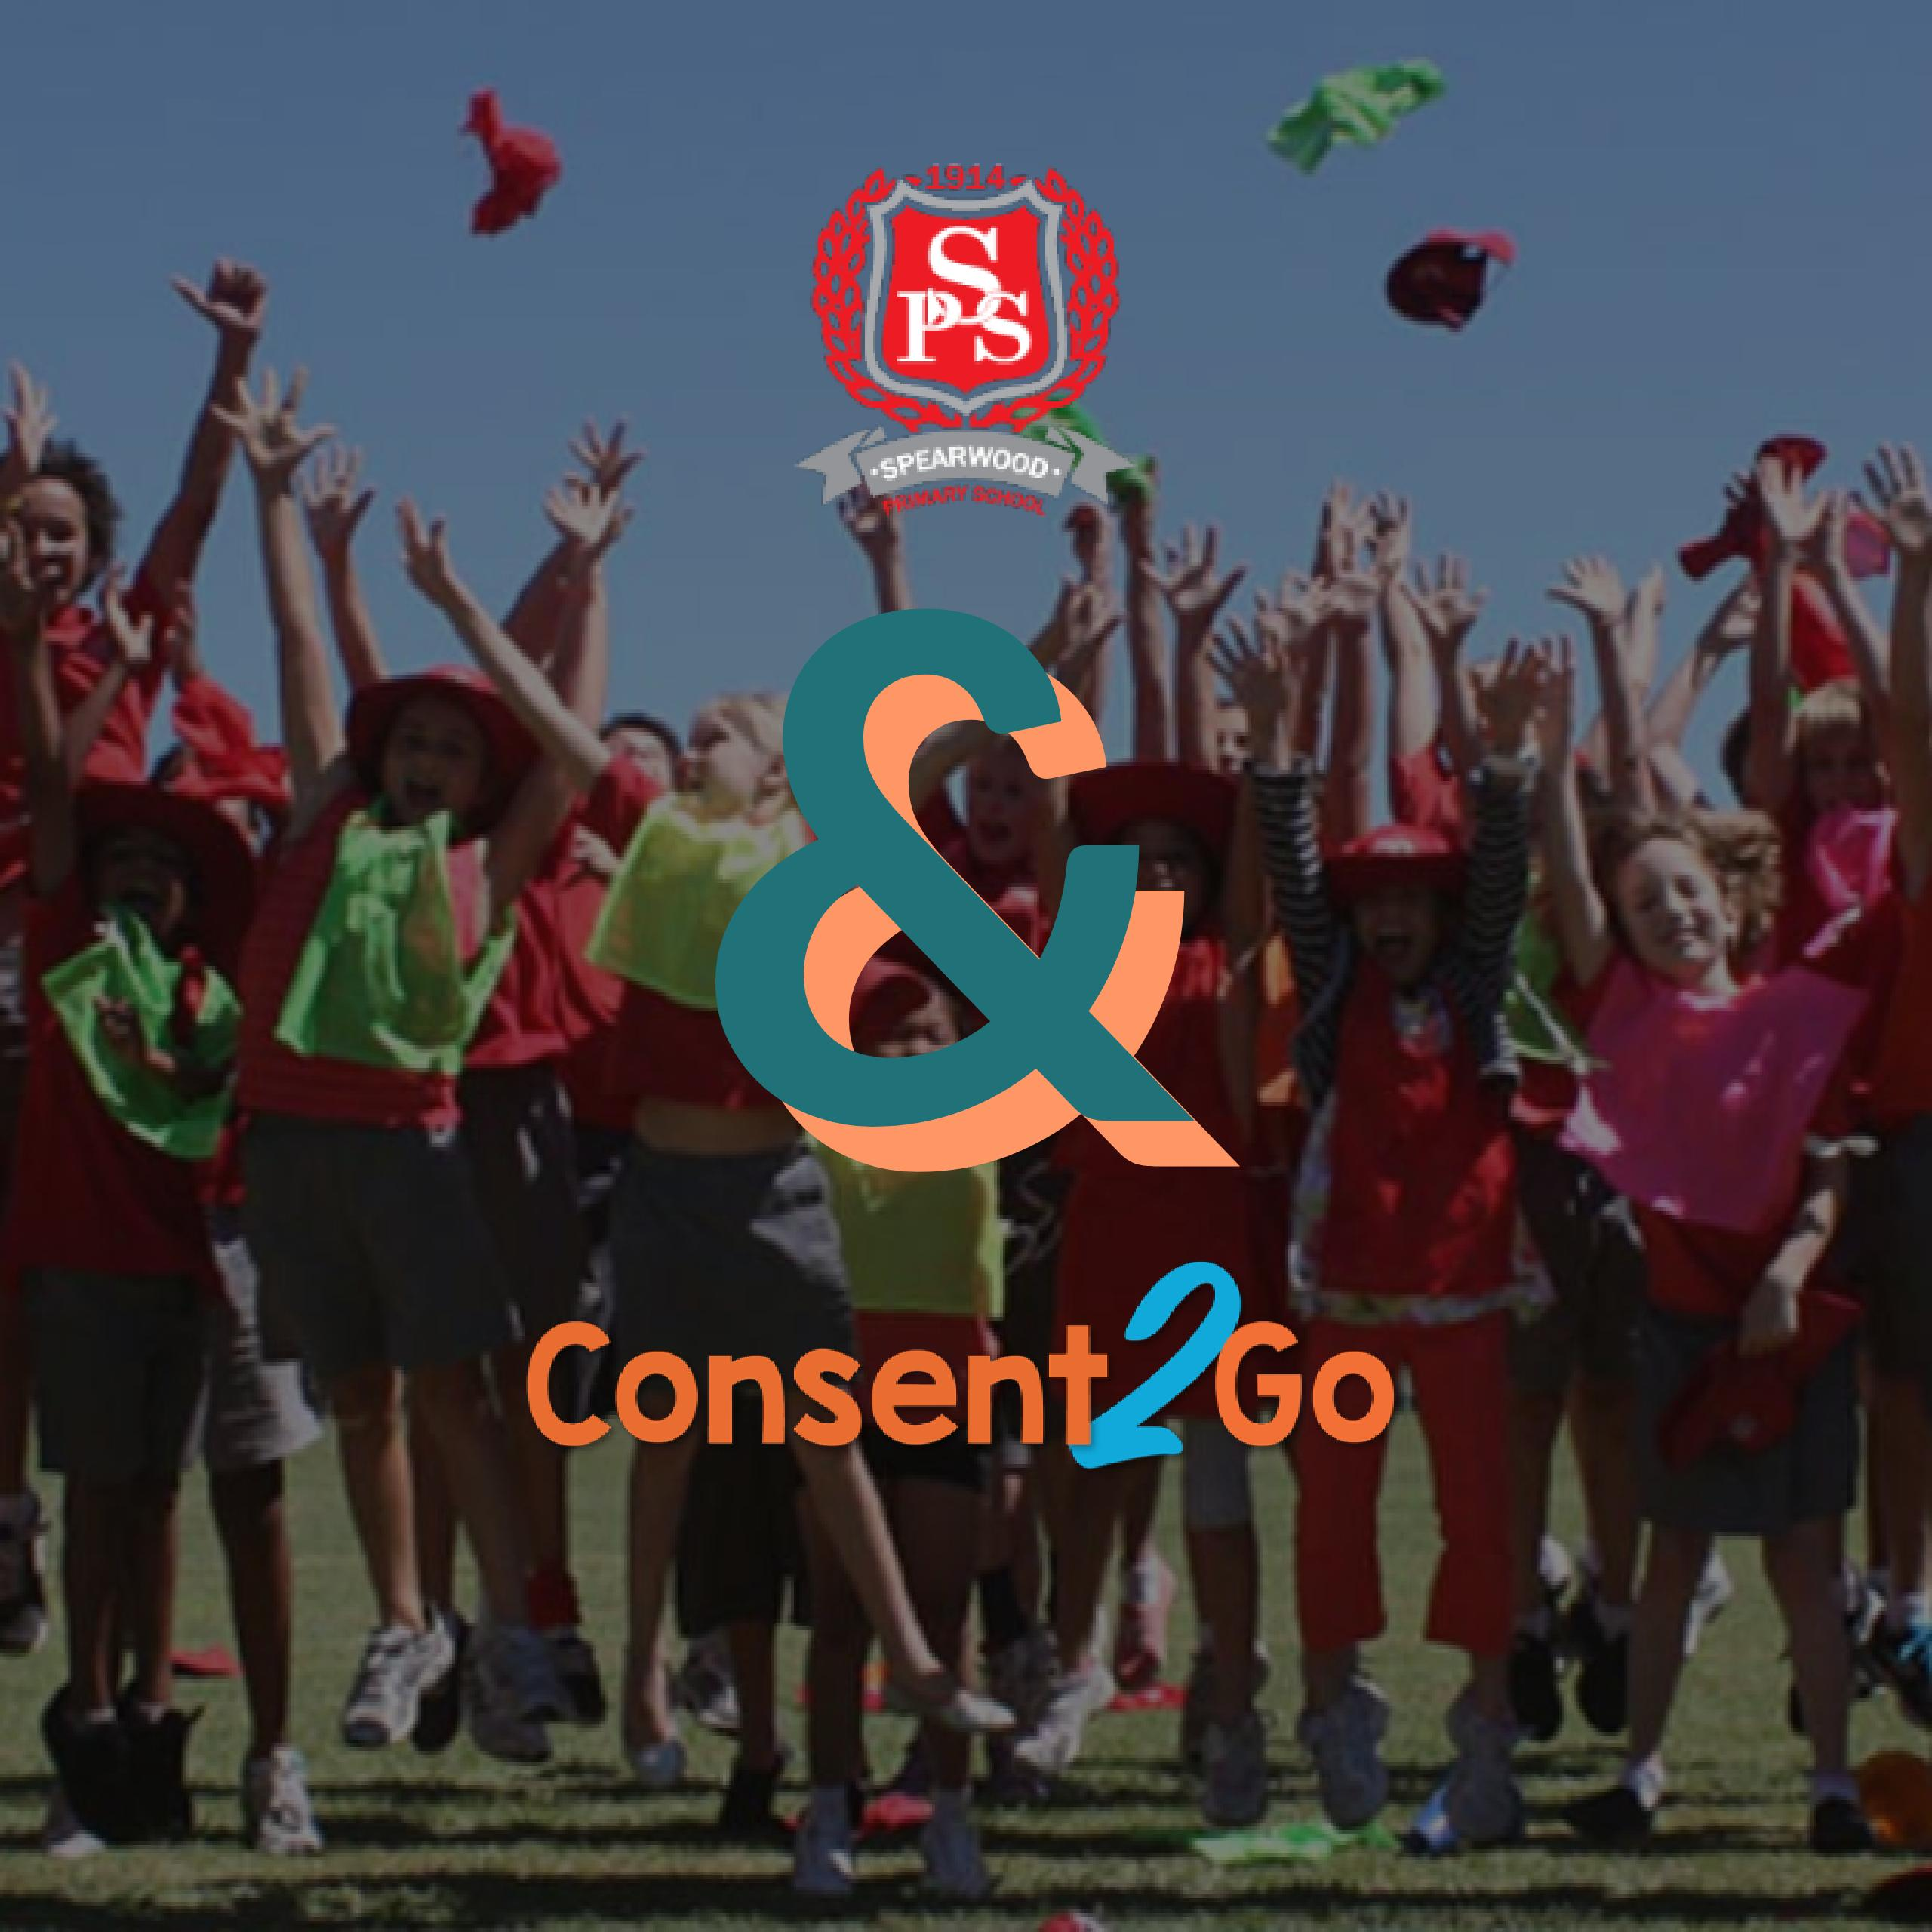 Consent2Go & Spearwood Primary School